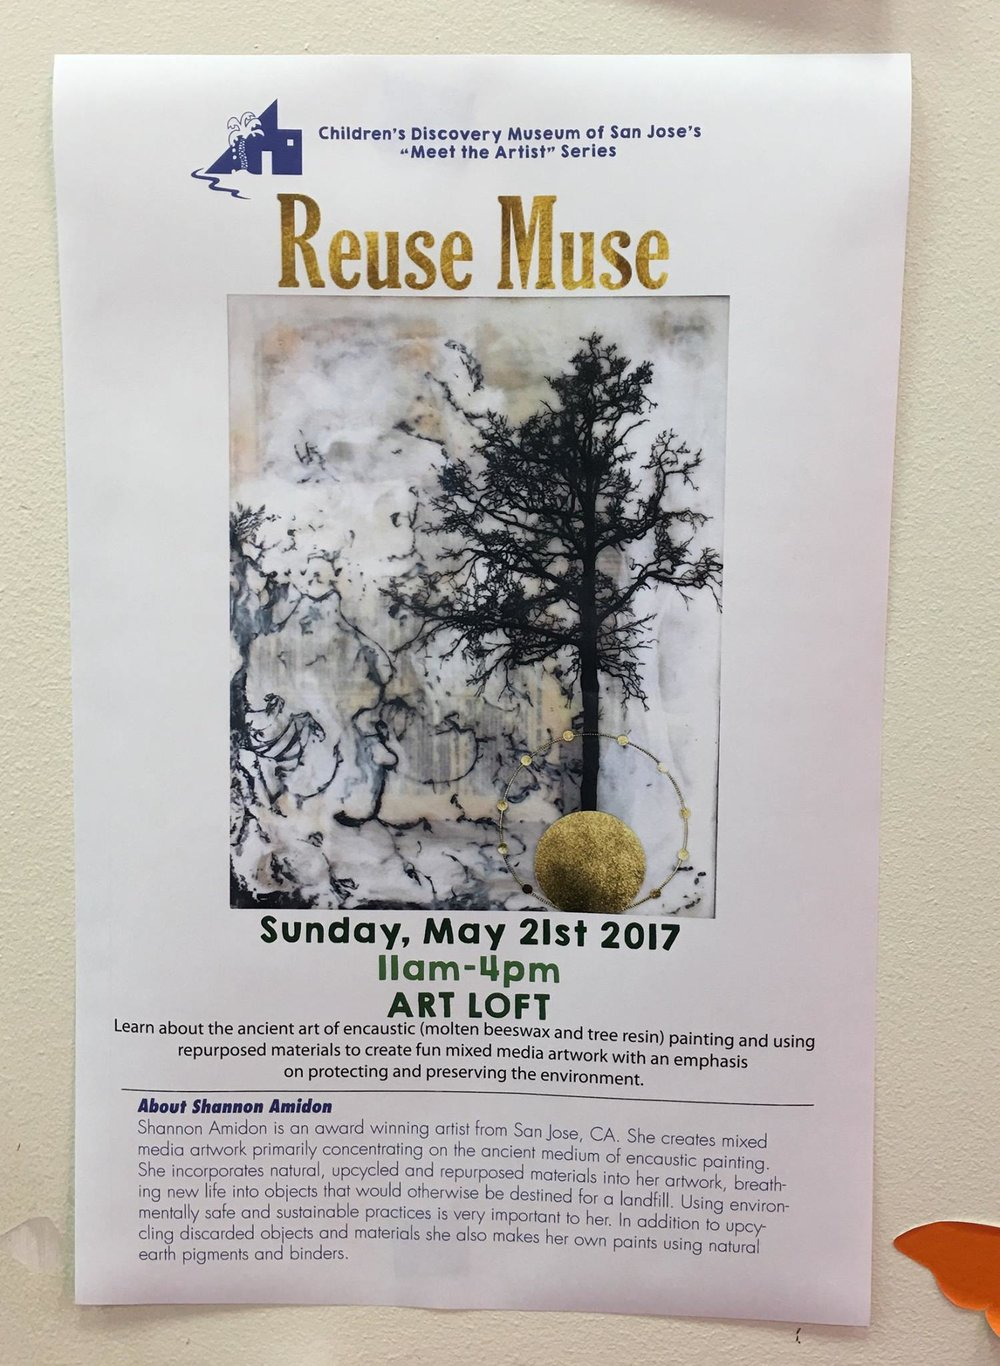 Reuse Must at Children's Discovery Museum